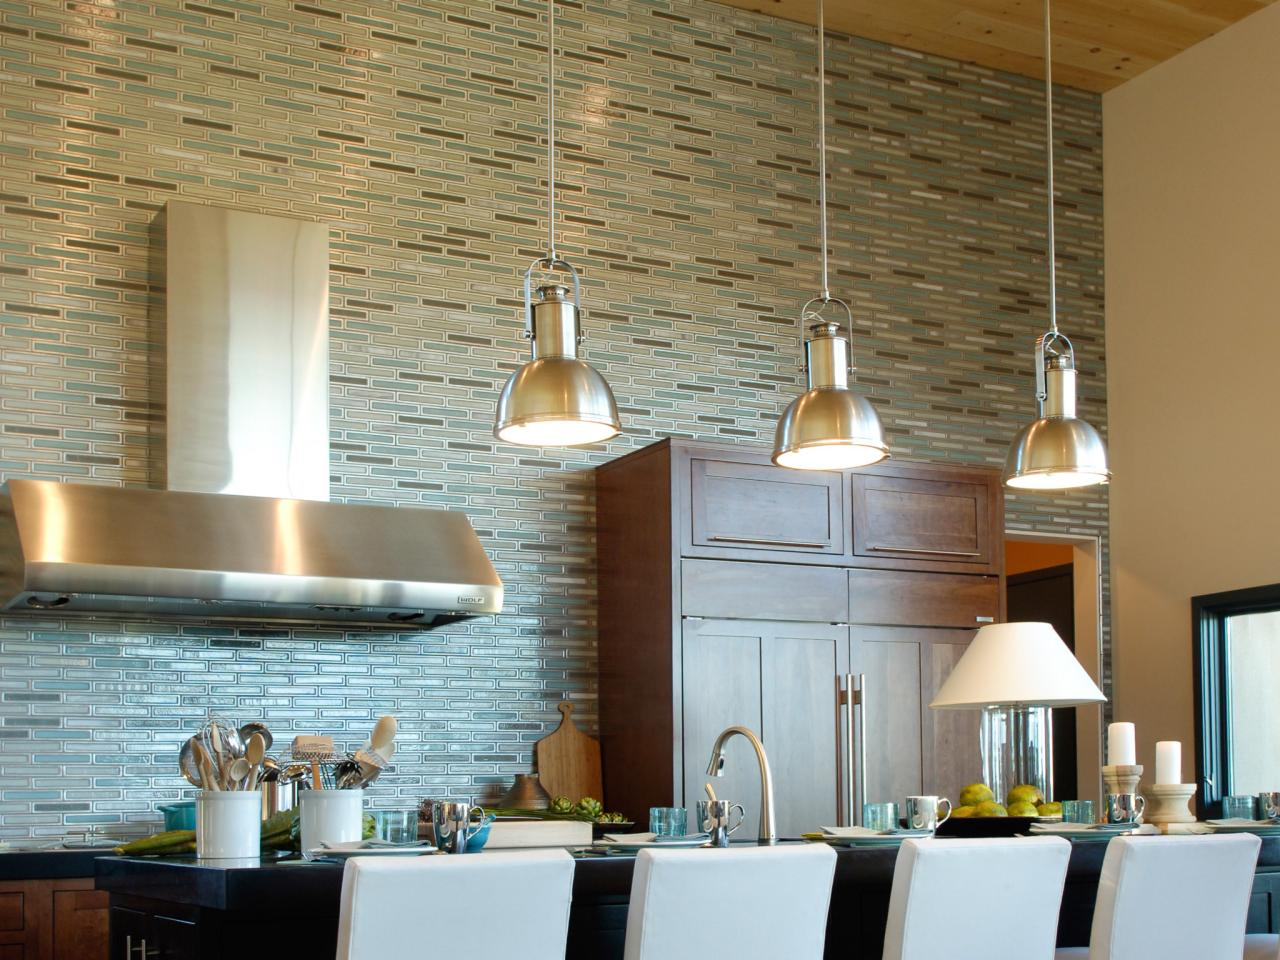 tile backsplash ideas - Kitchen Tiling Ideas